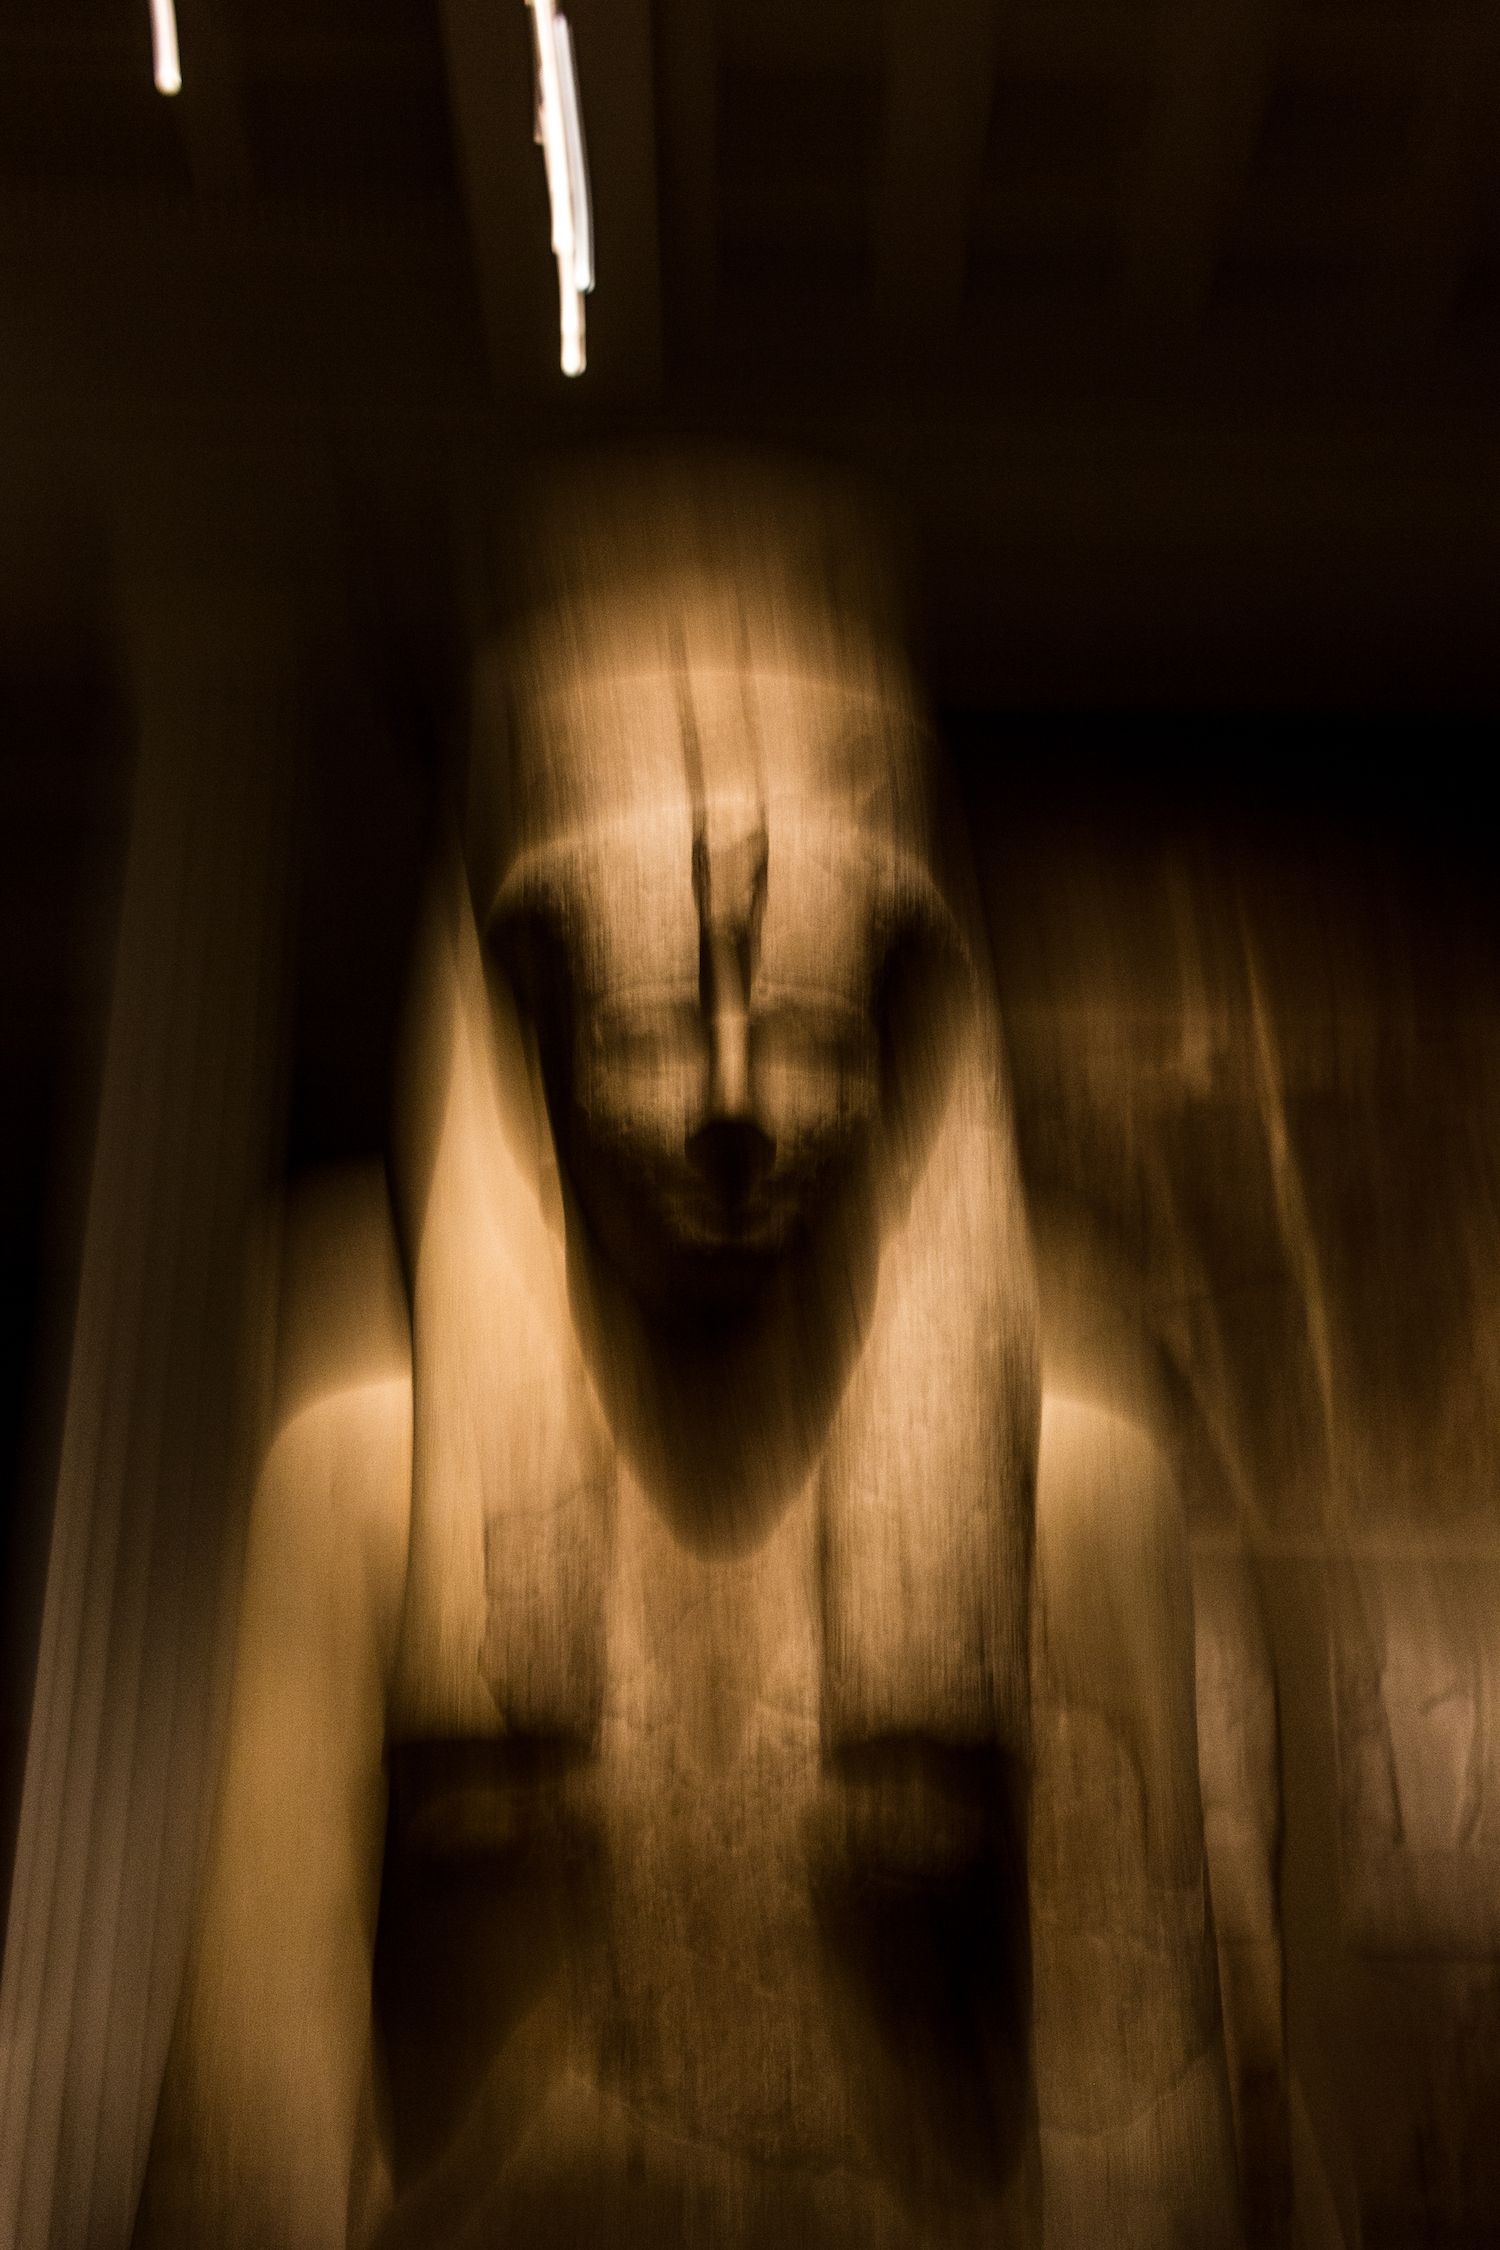 Professional Photography Stone Sculpture From Kemet Egypt Of Goddess Hathor Blurred In British Museum London